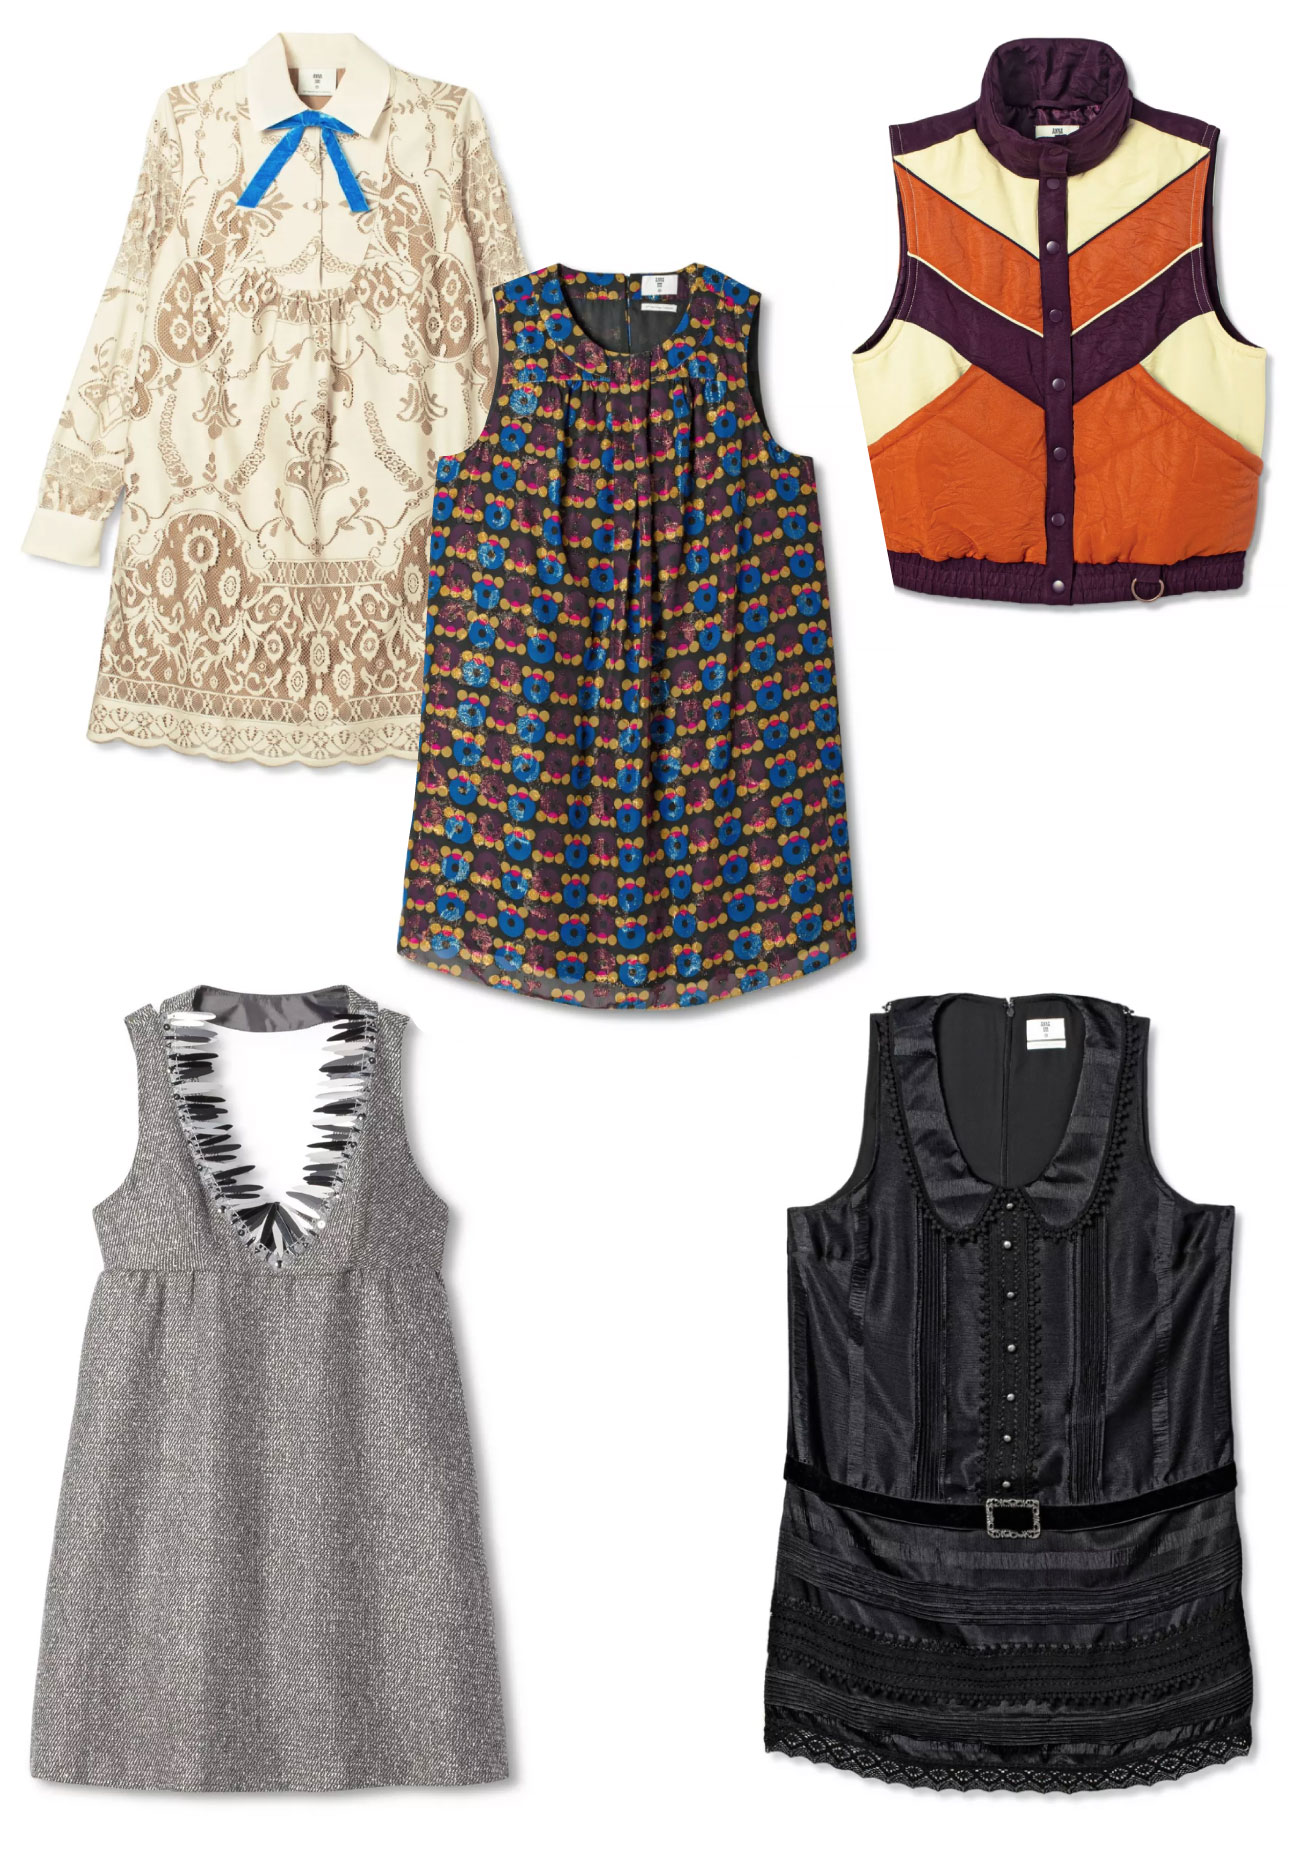 Five pieces of apparel from Anna Sui including tops, dresses and vests